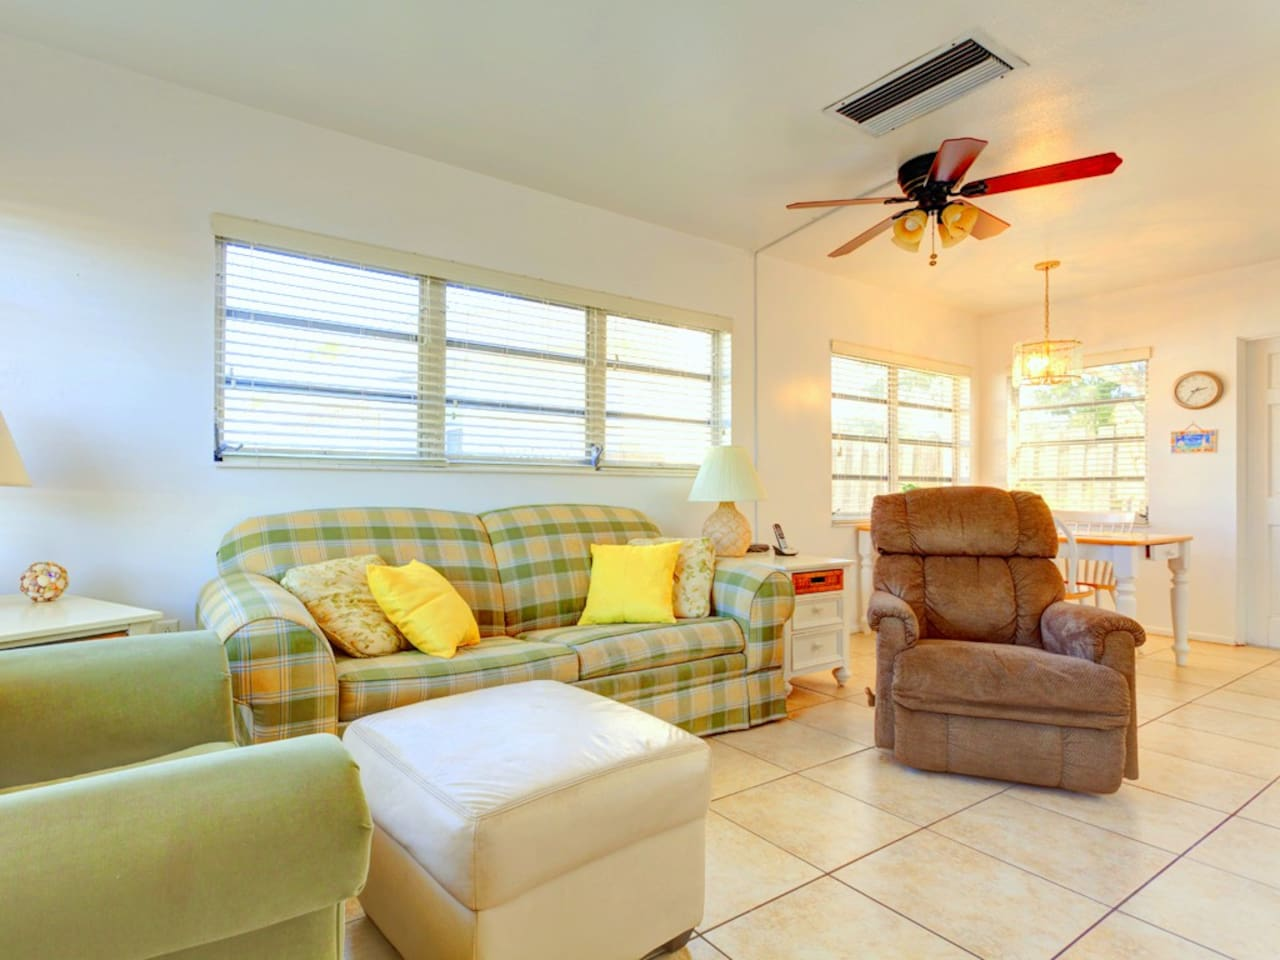 Relax in our classically laid-back Florida living room. Everything about our condo makes you want to relax and take it easy! From the cool tile floors to the ceiling fan, from the chic furnishings to the bright & sunny windows, you can enjoy it all and le